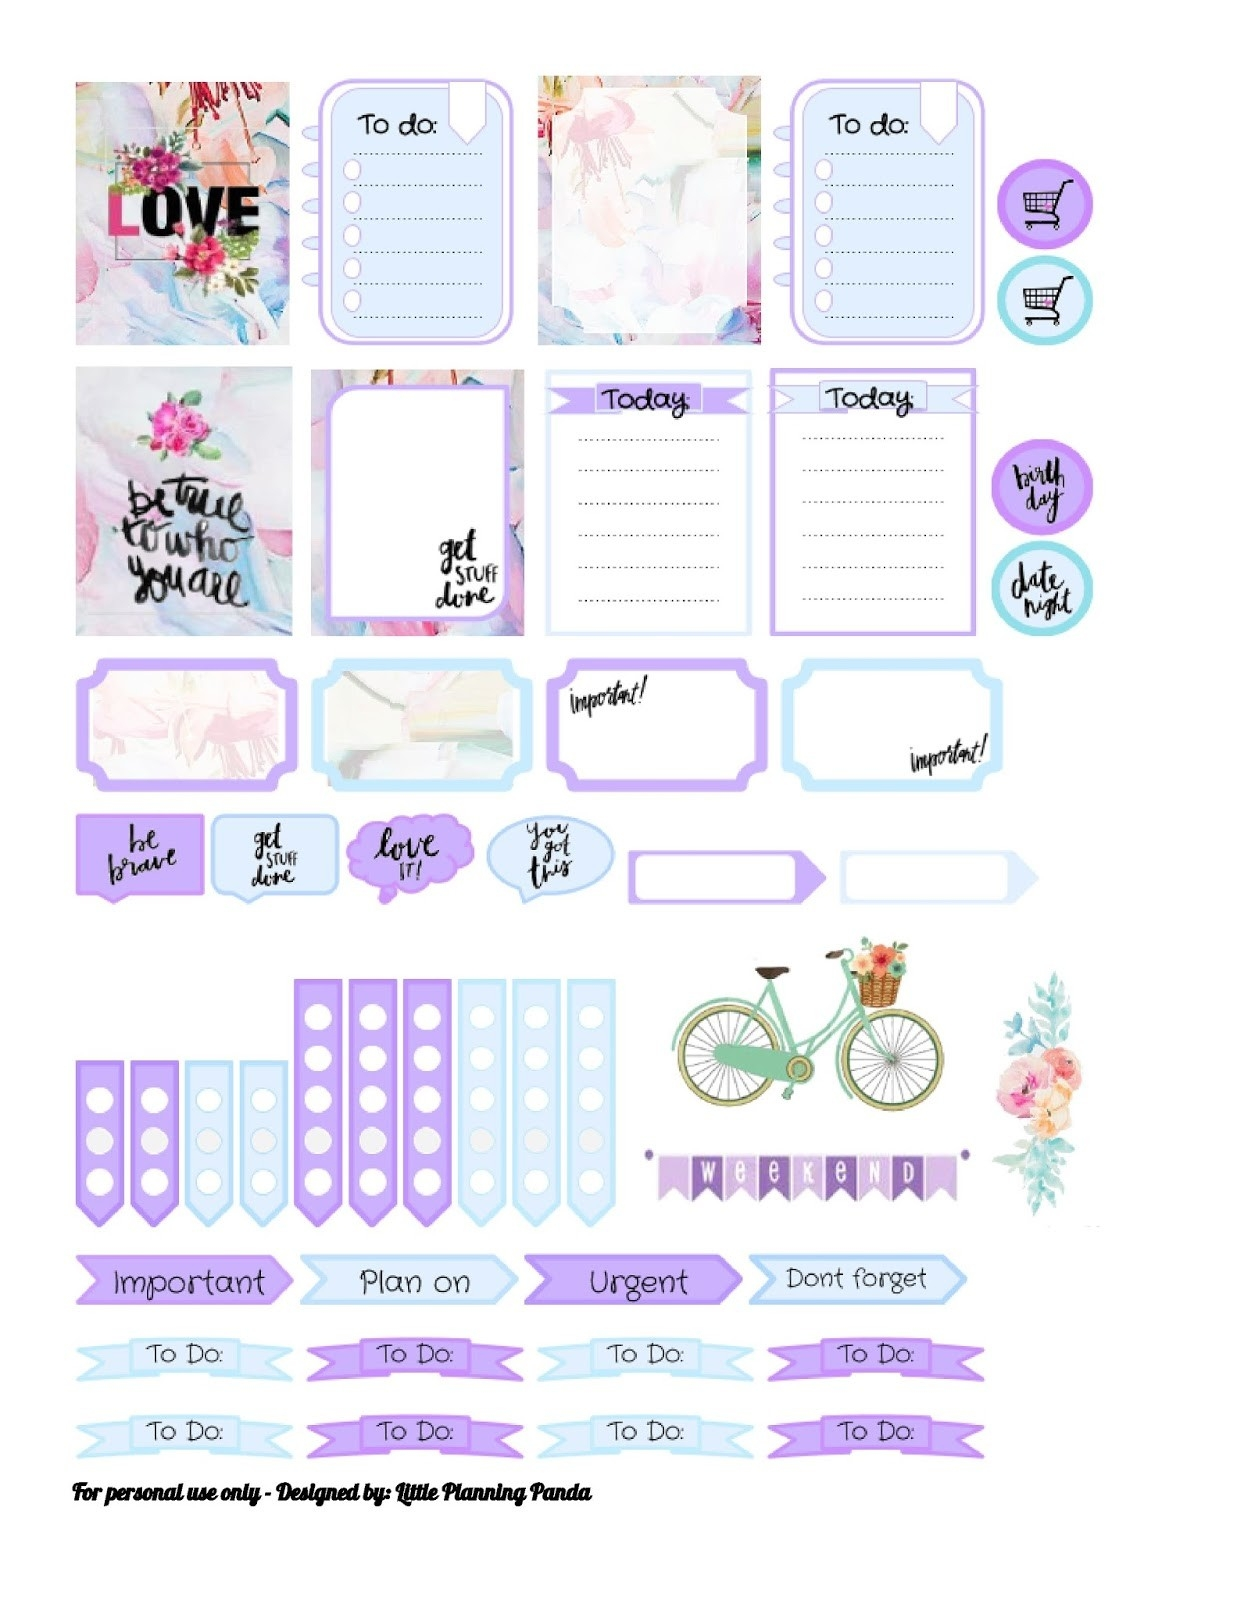 Little Planing Panda: Ted Baker Hanging Garden Inspired Vertical for Planner Stickers Template 28441